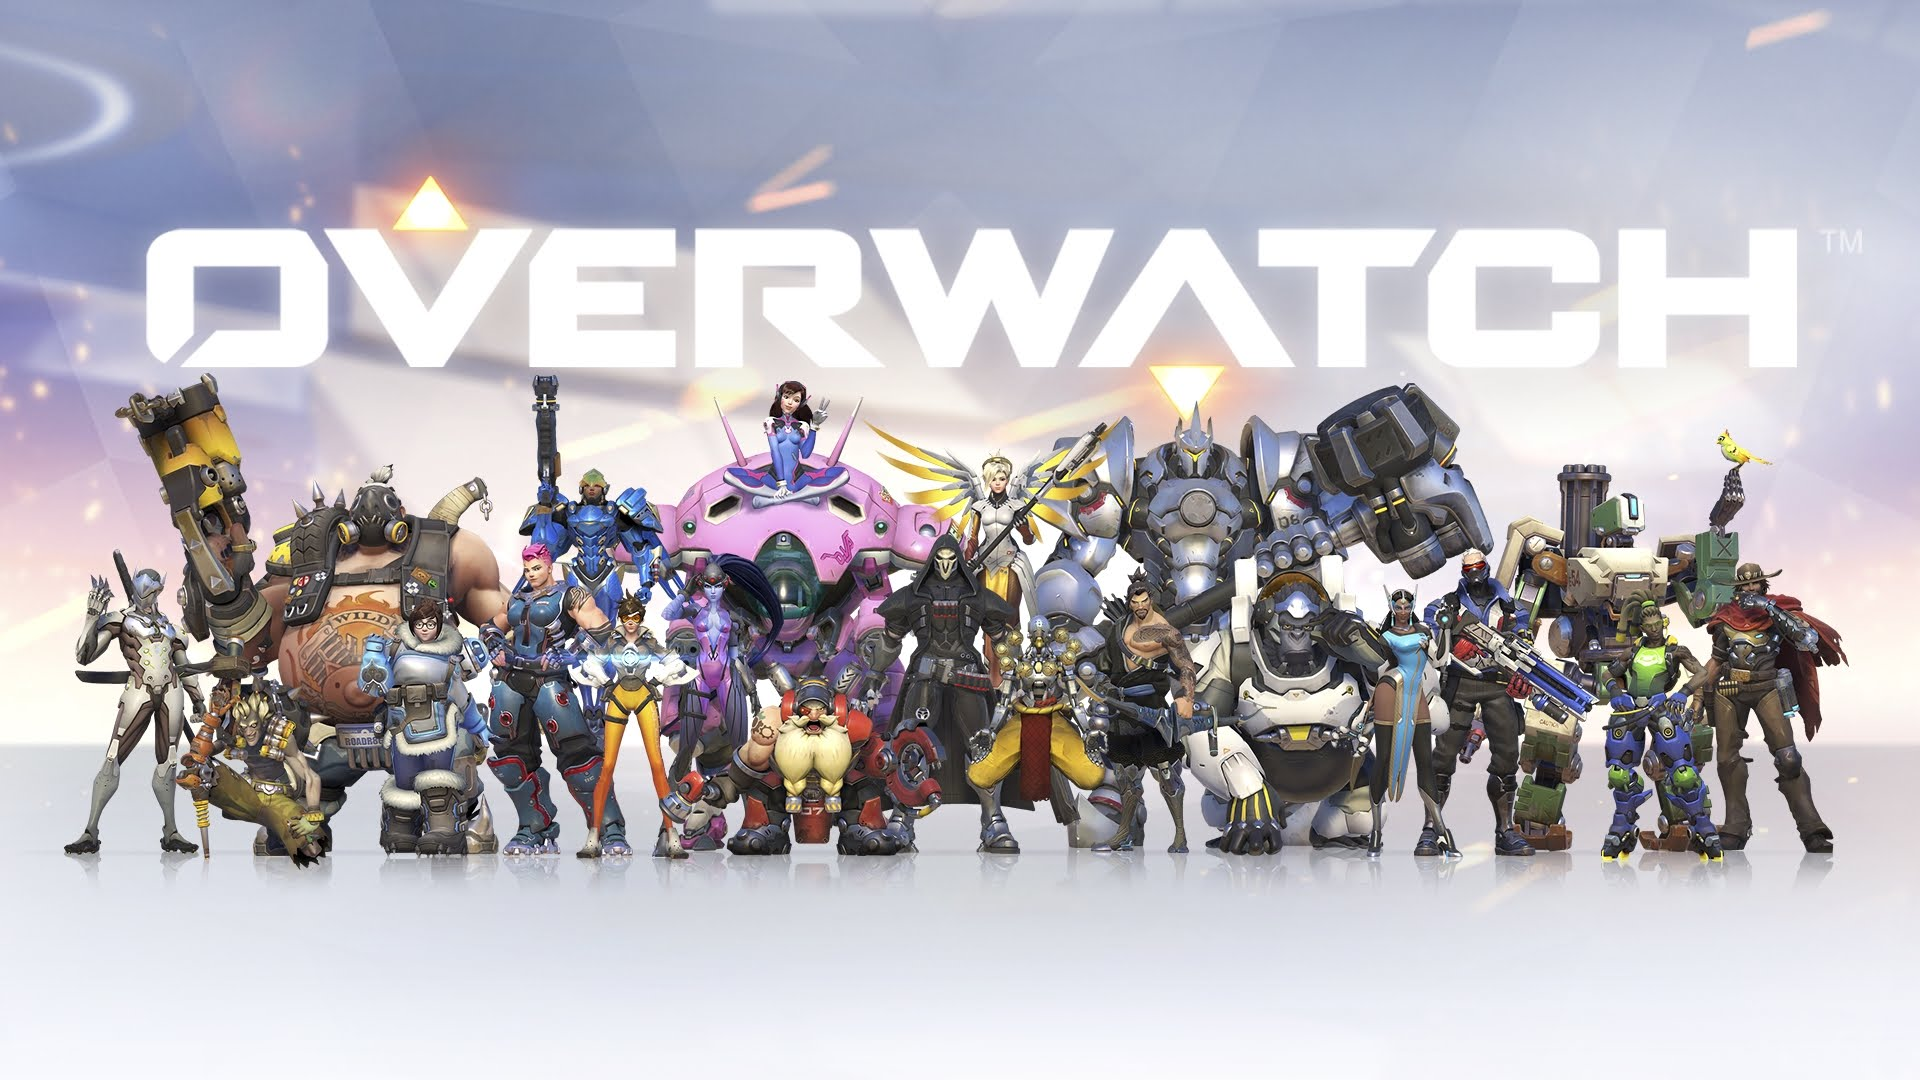 Blizzard Announces Free-To-Play Weekend For Overwatch, Begins September 9